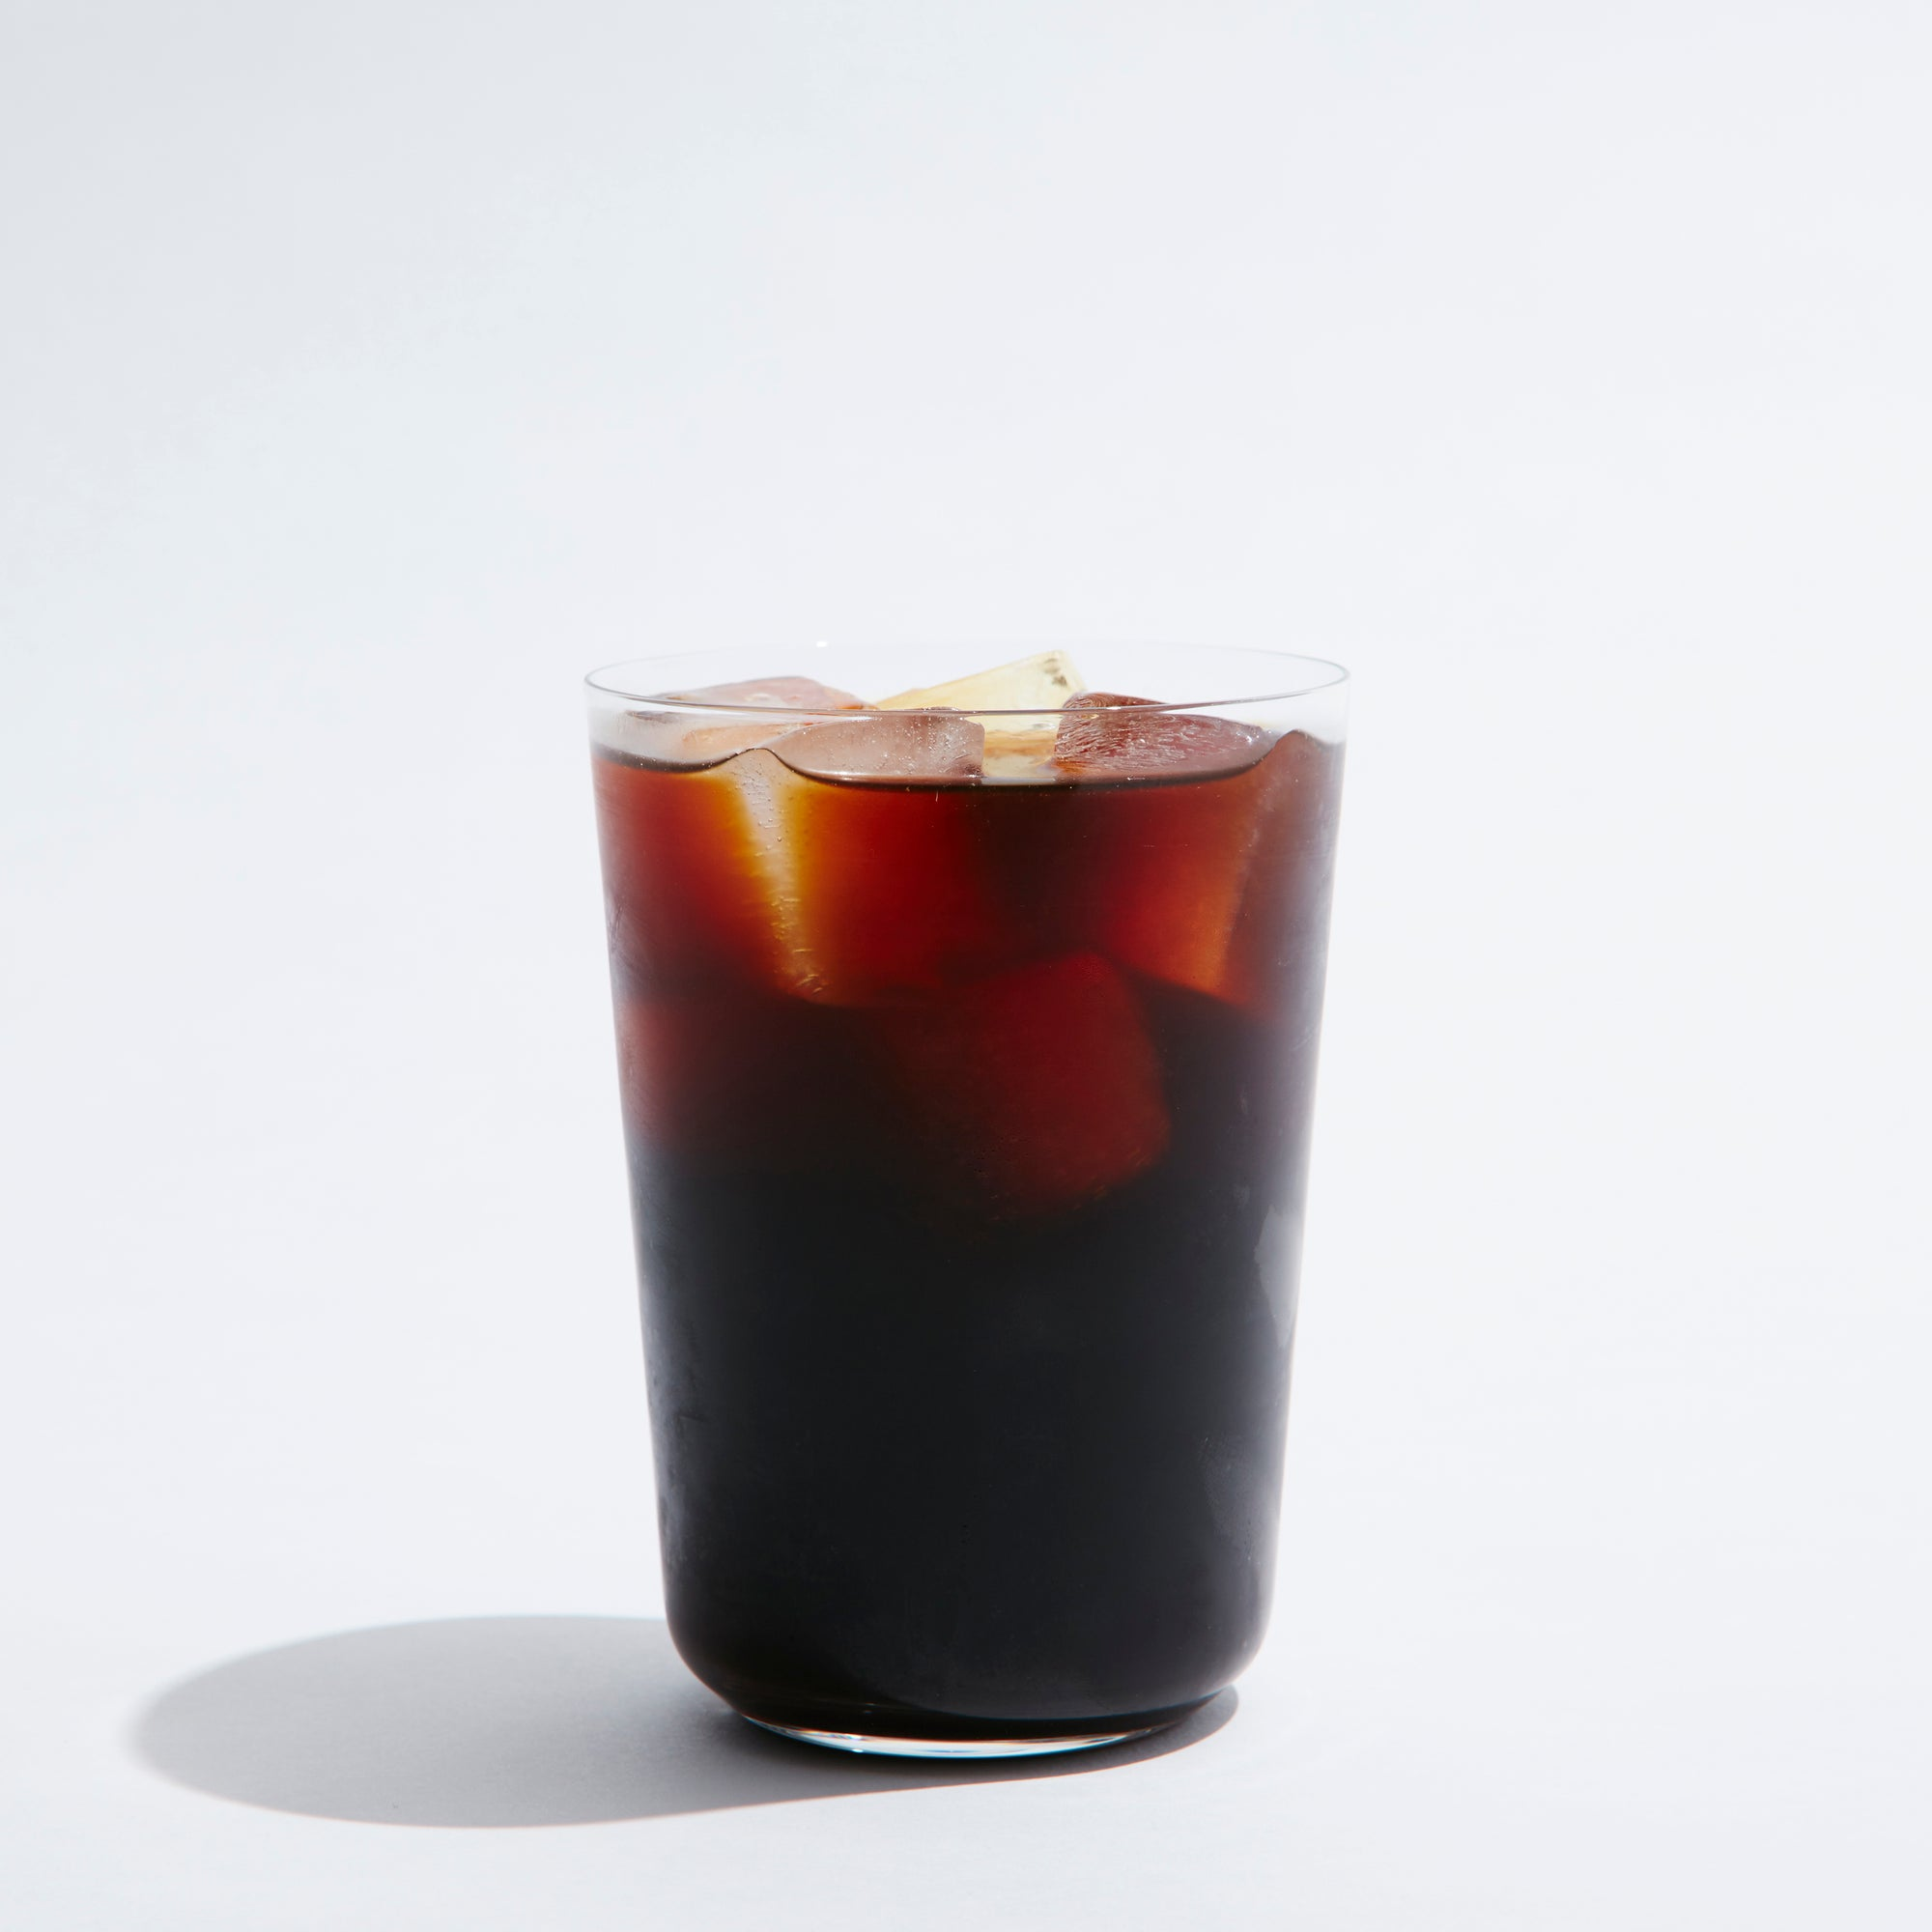 Recipe - Grady's Black Iced Coffee - Grady's Cold Brew